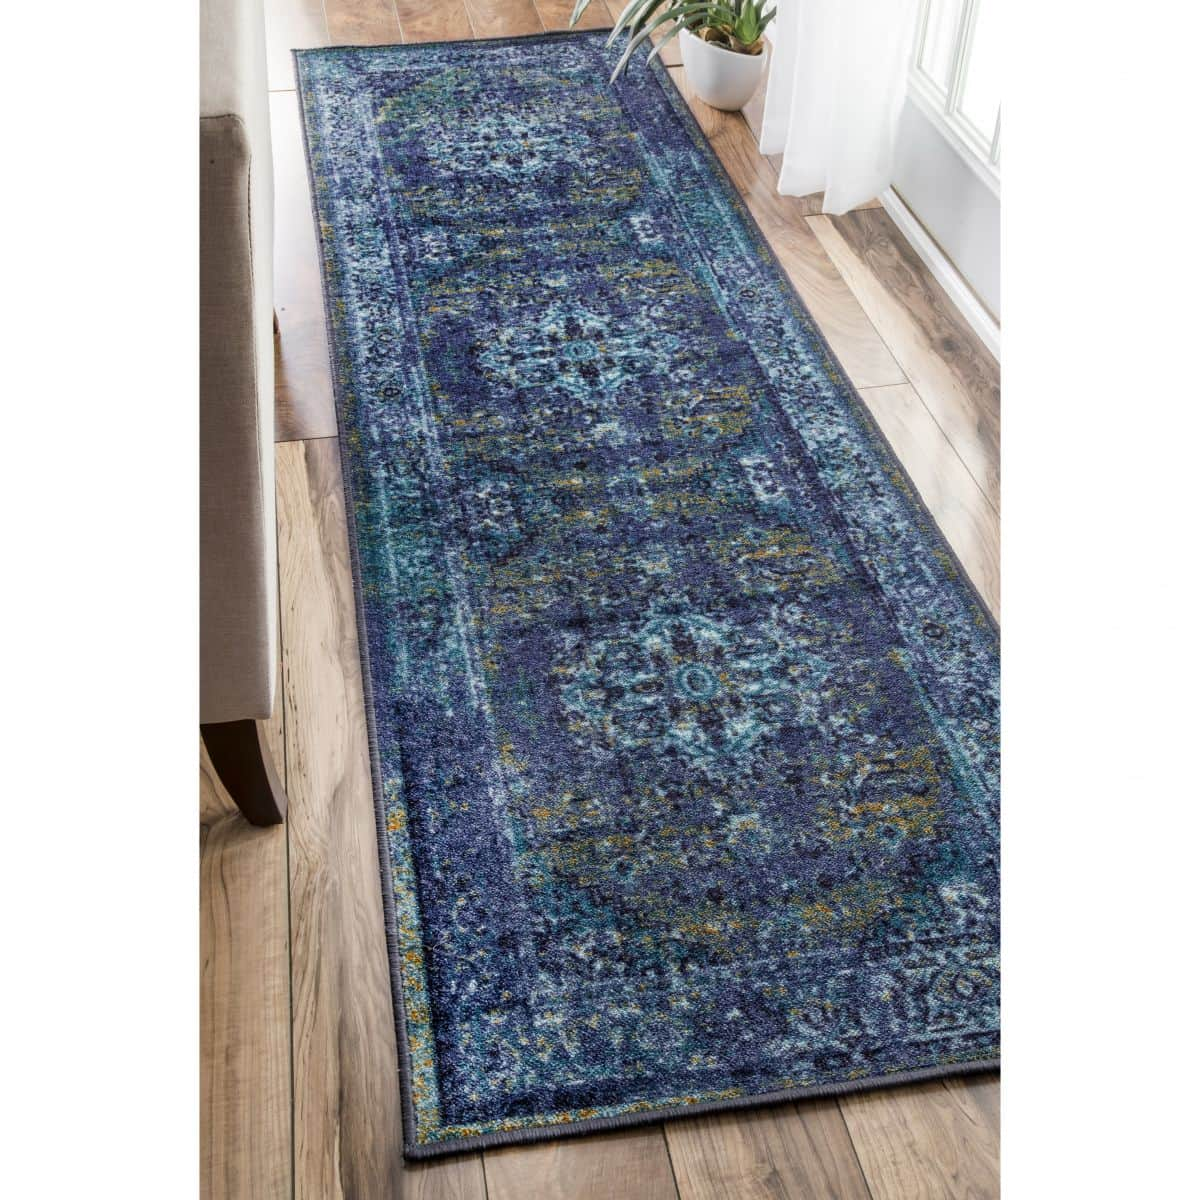 Overdyed Blue Persian Area Rug